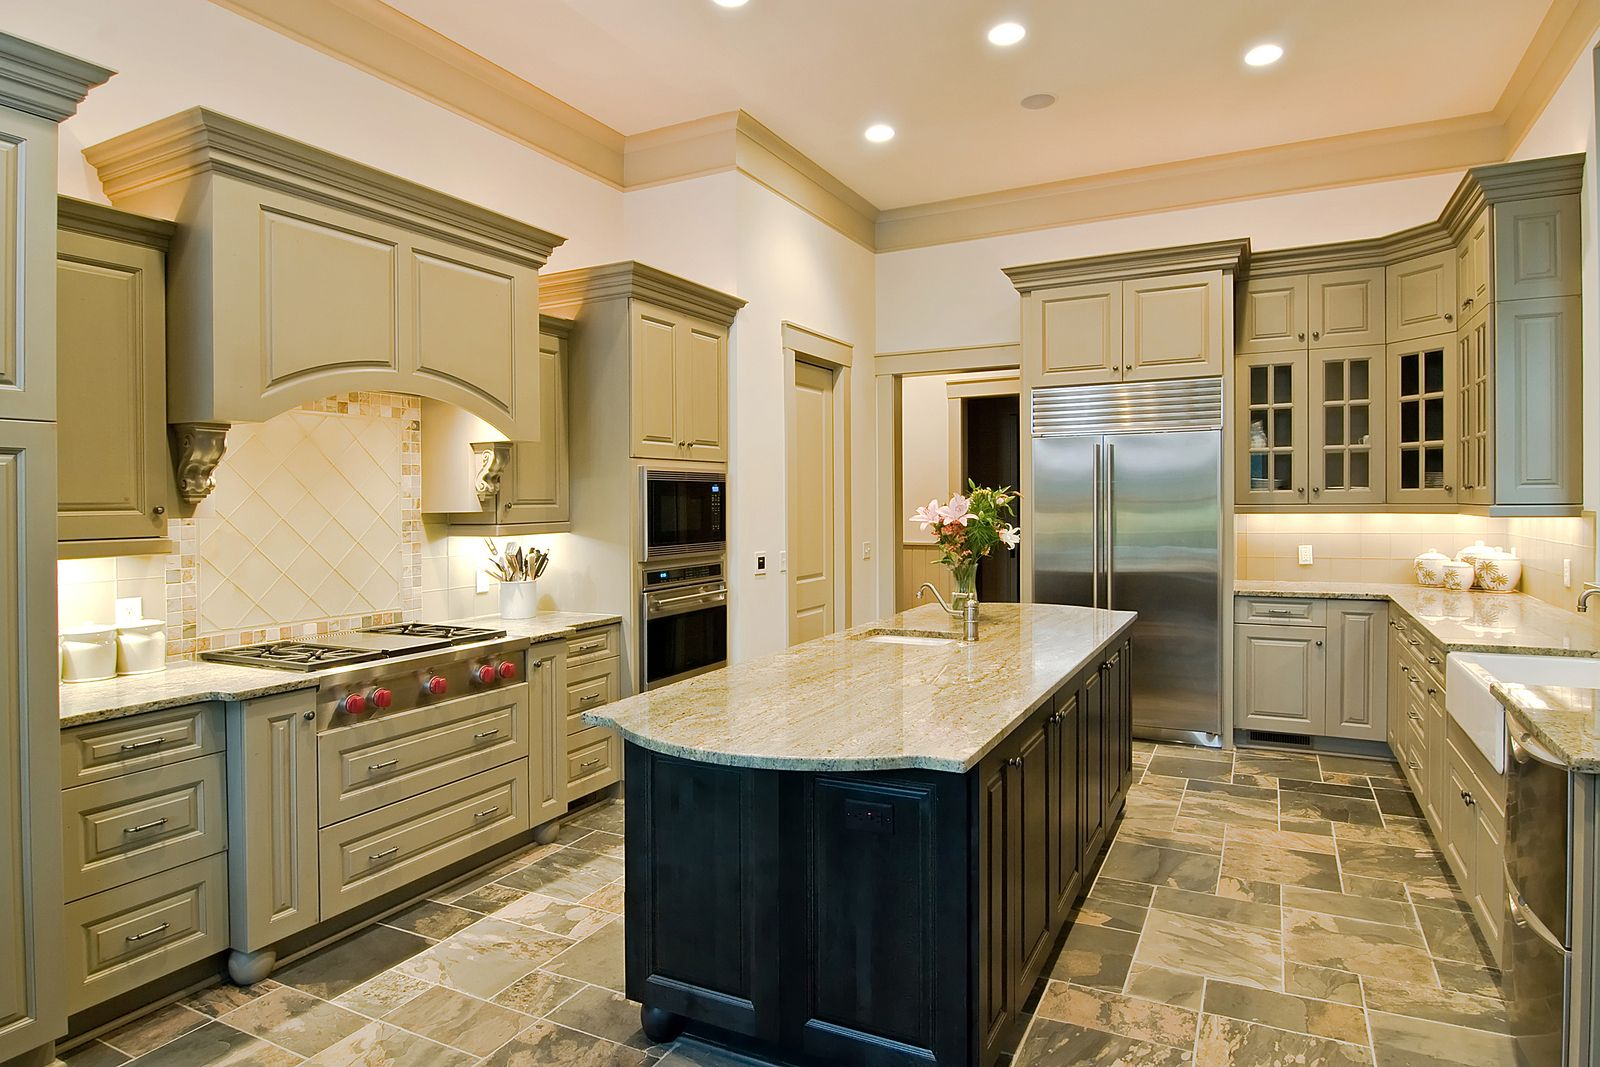 A kitchen with cabinets and lights